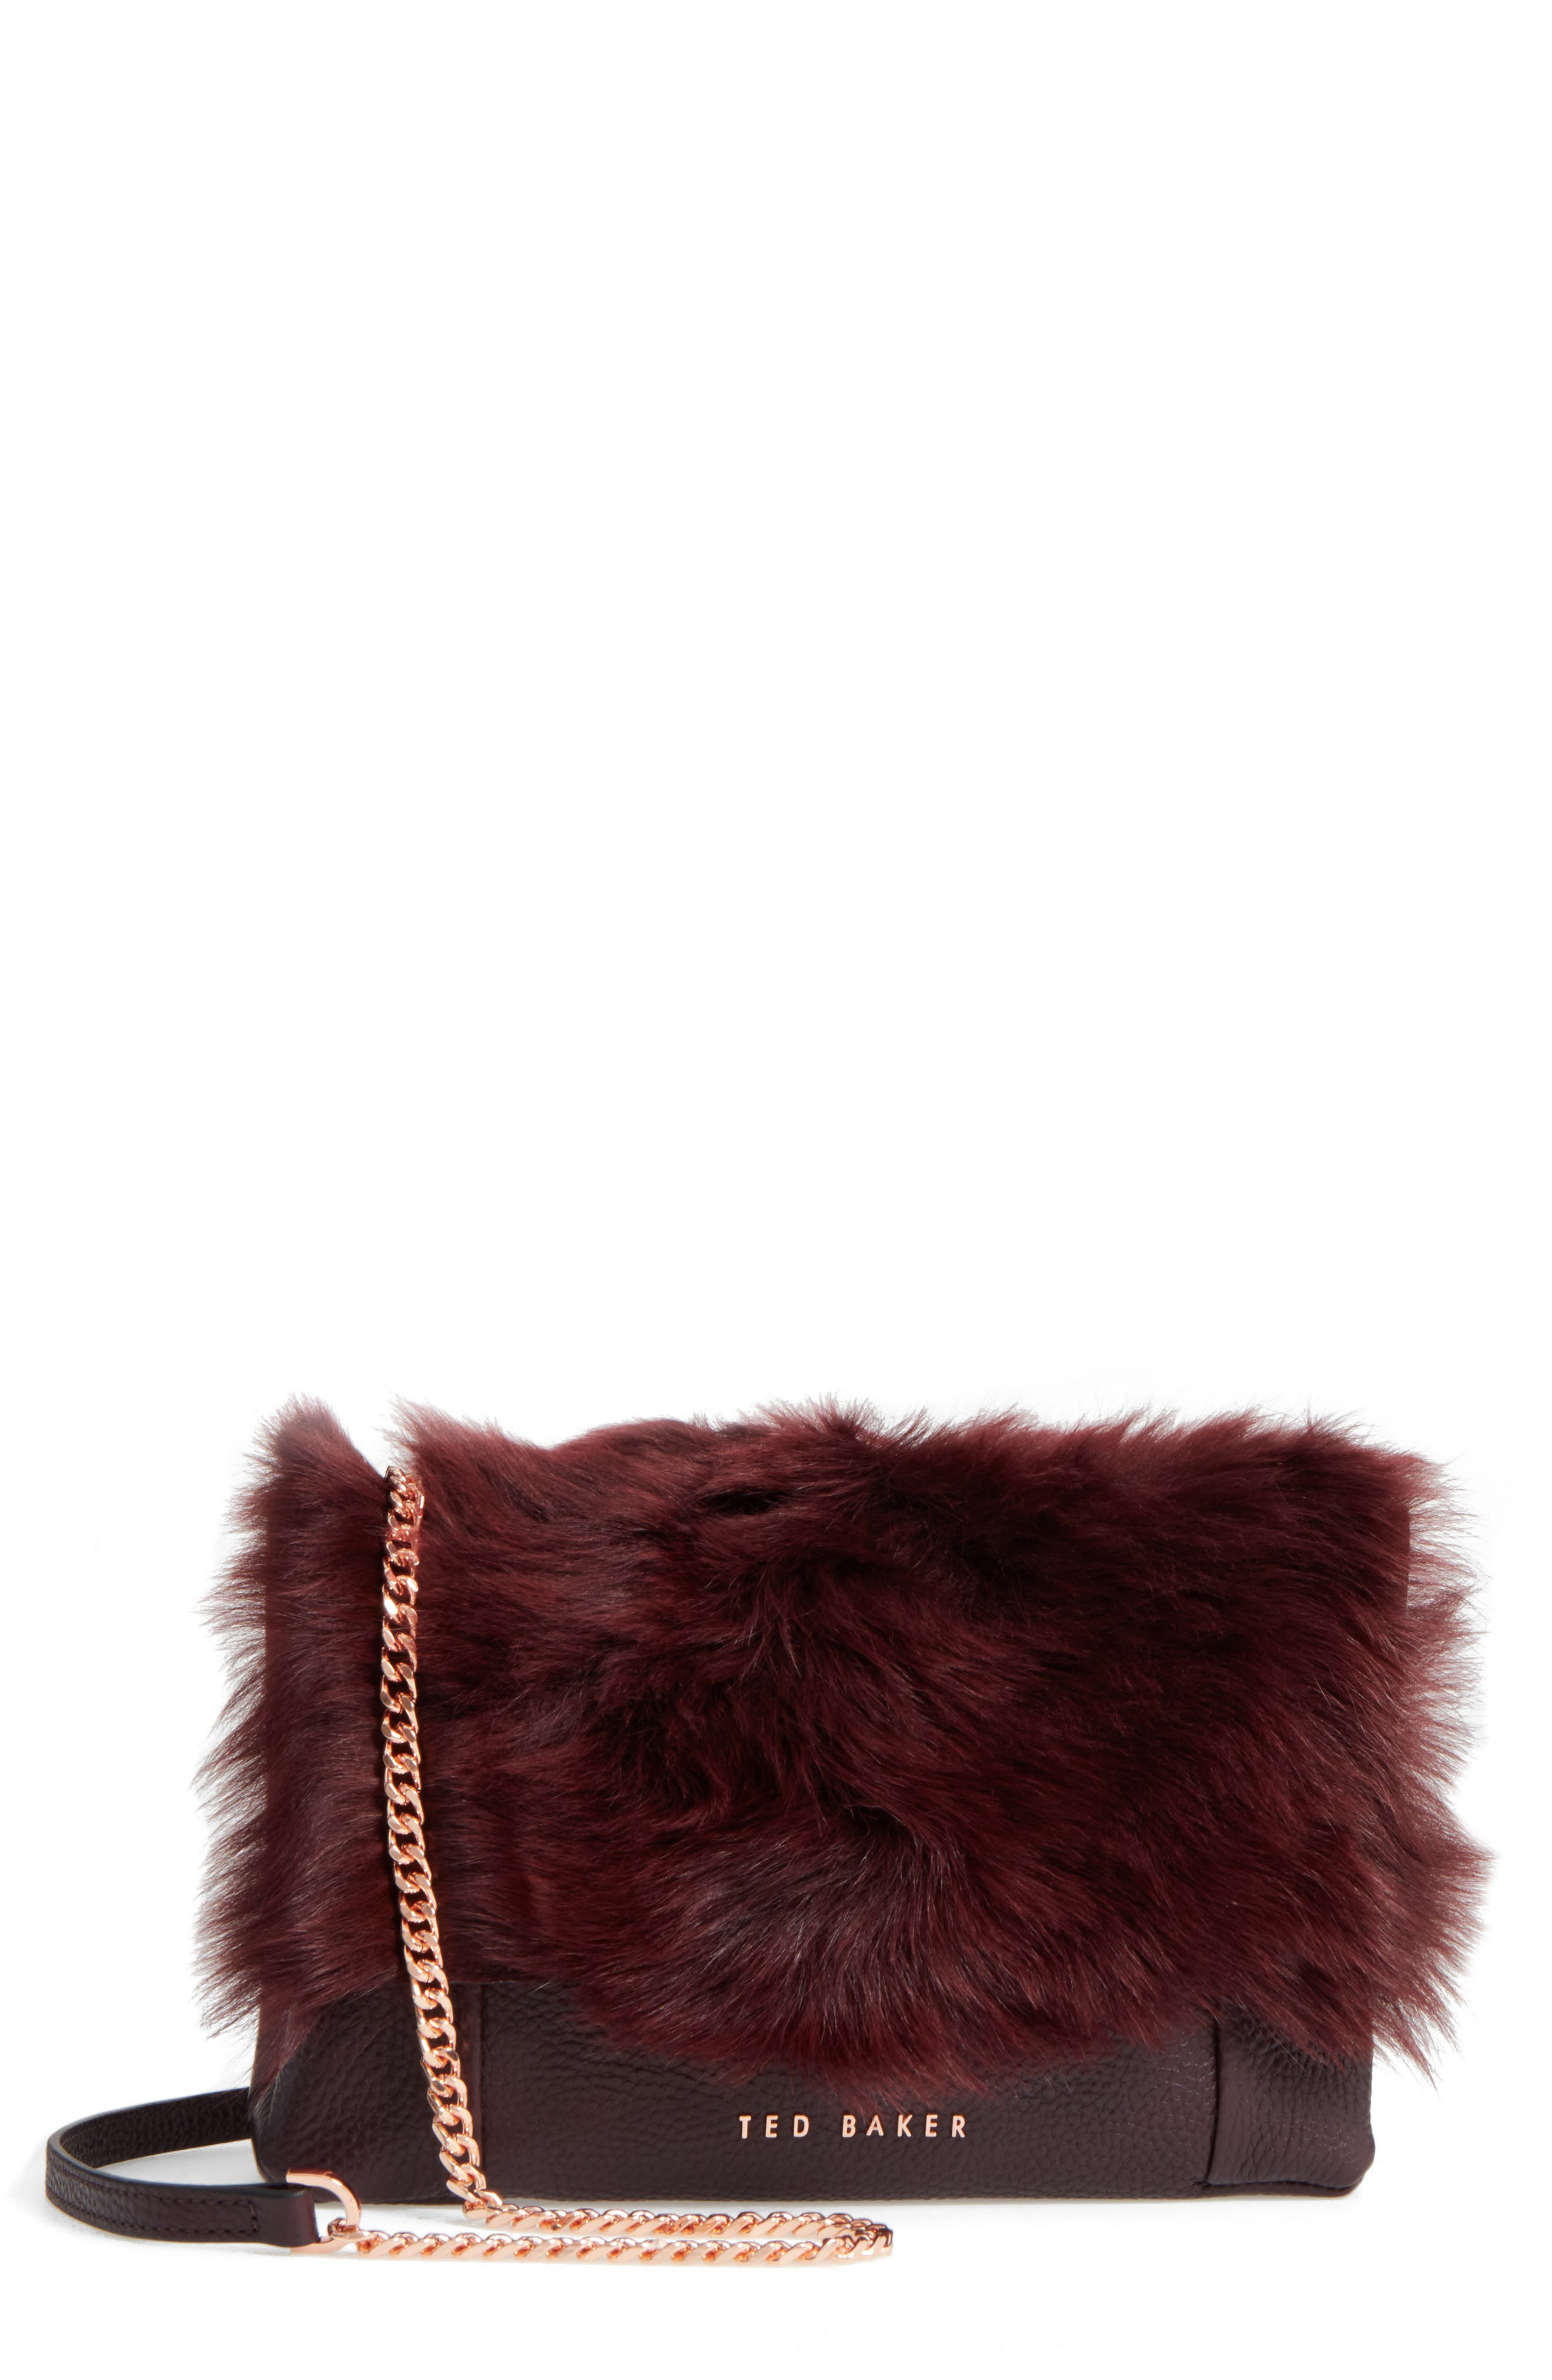 Fuzzi Genuine Shearling & Leather Convertible Crossbody Bag,                             Main thumbnail 1, color,                             Maroon